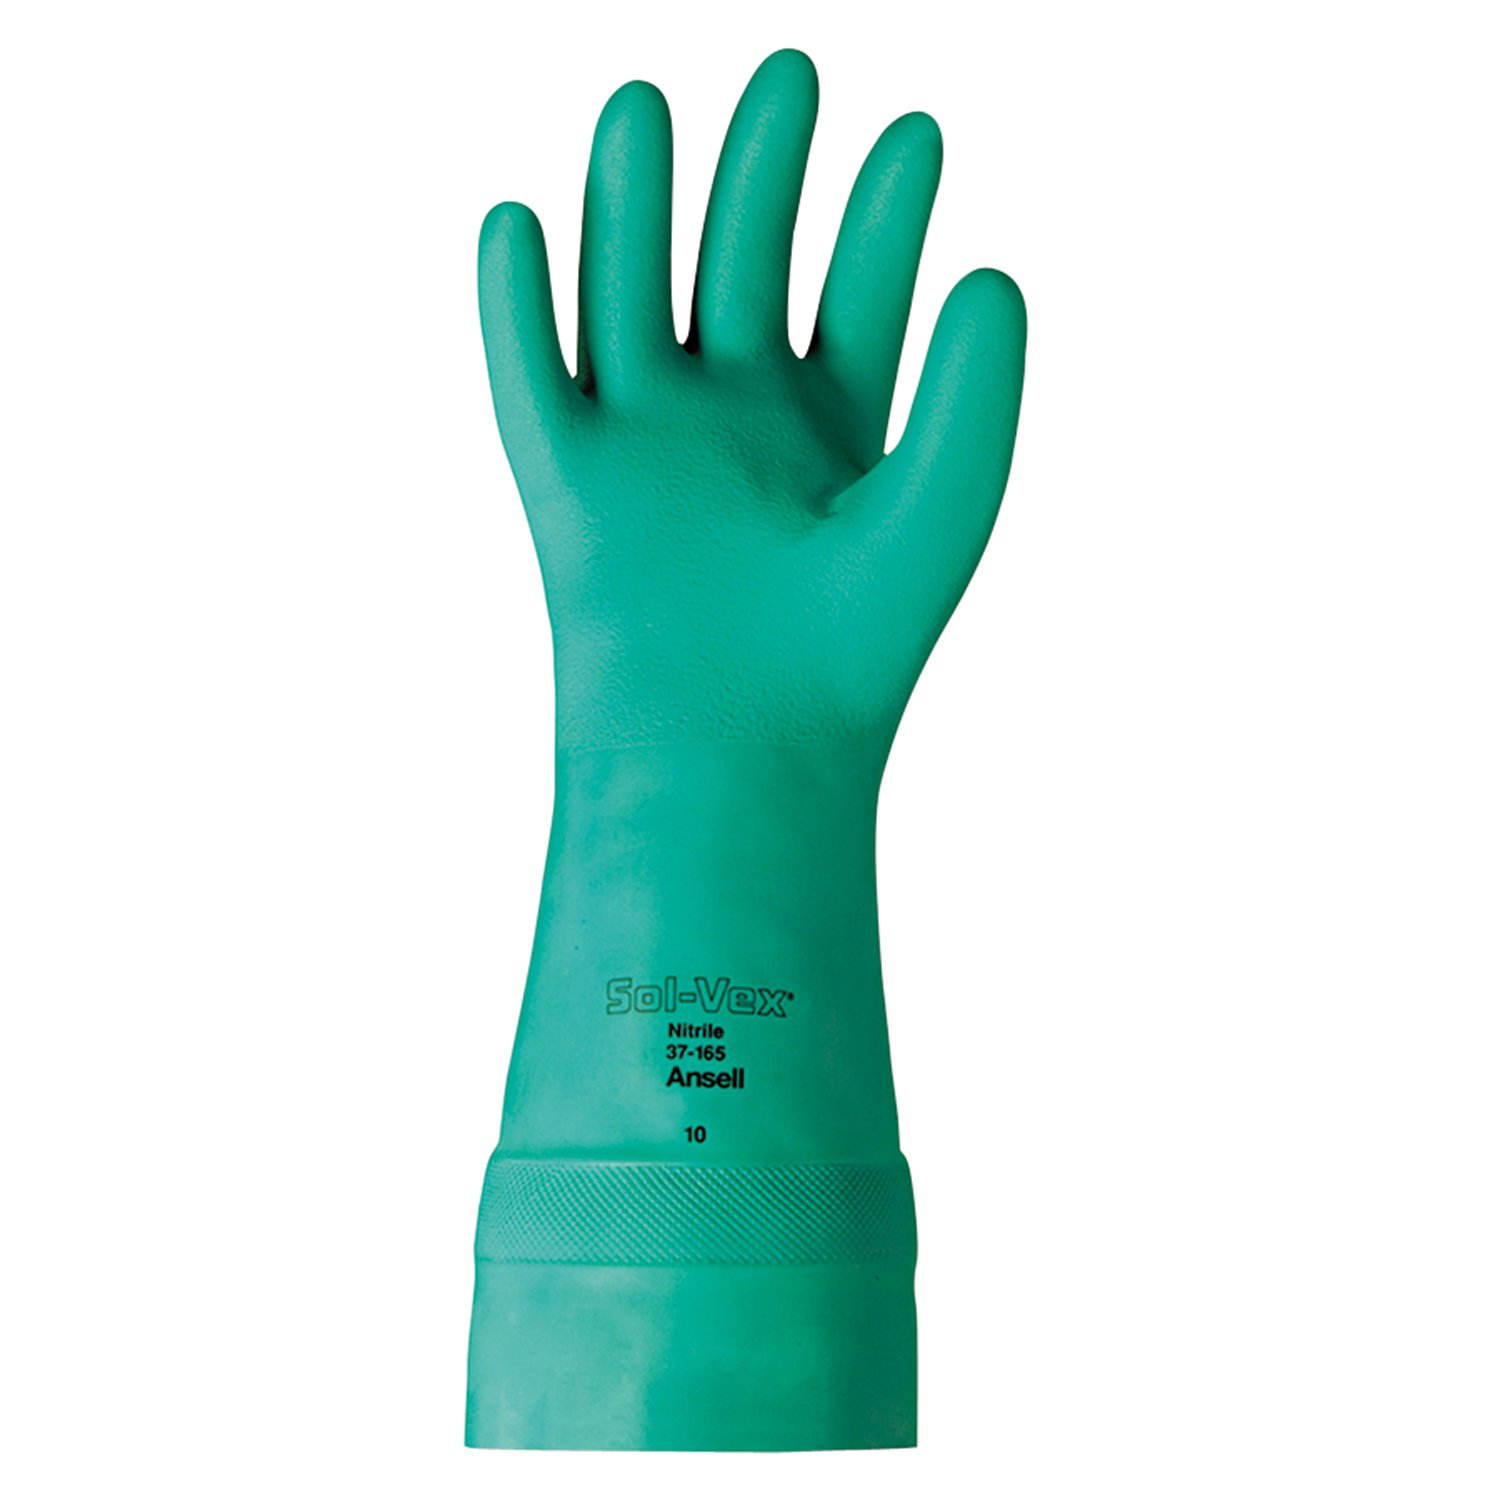 Ansell 37-165-10 Sol-Vex Nitrile Gloves, Straight Cuff, Unlined Lined, Size 10, 15'', Green (Pack of 12)